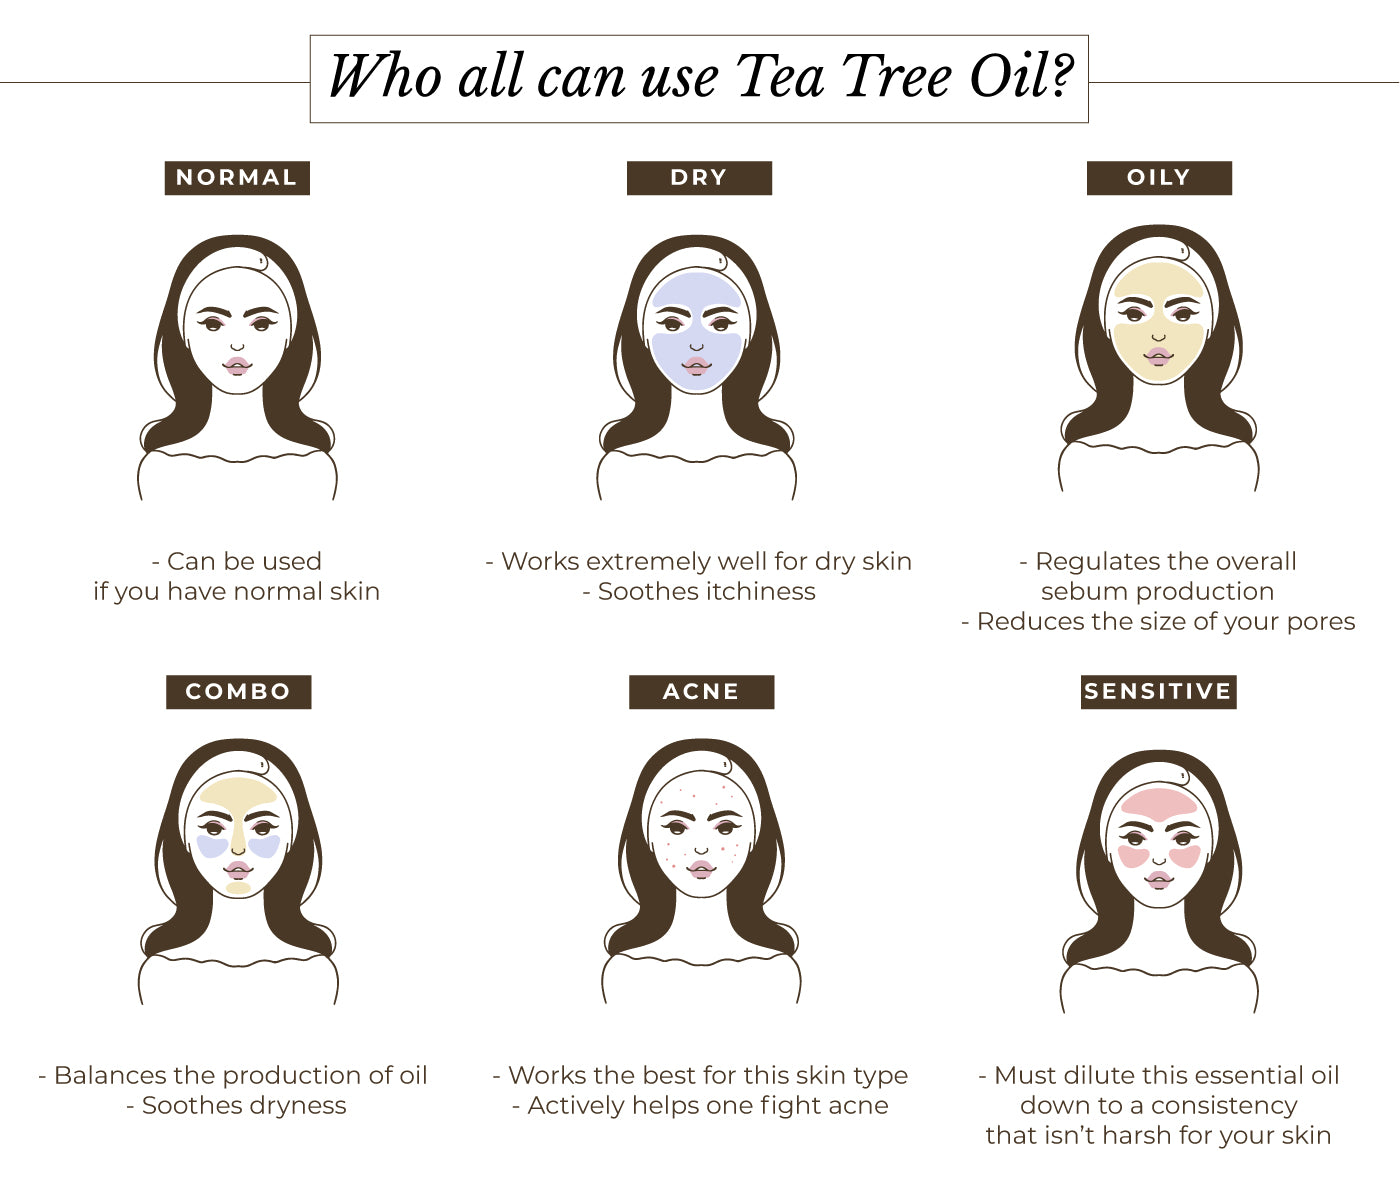 This is an image of who all can use Tea Tree Oil